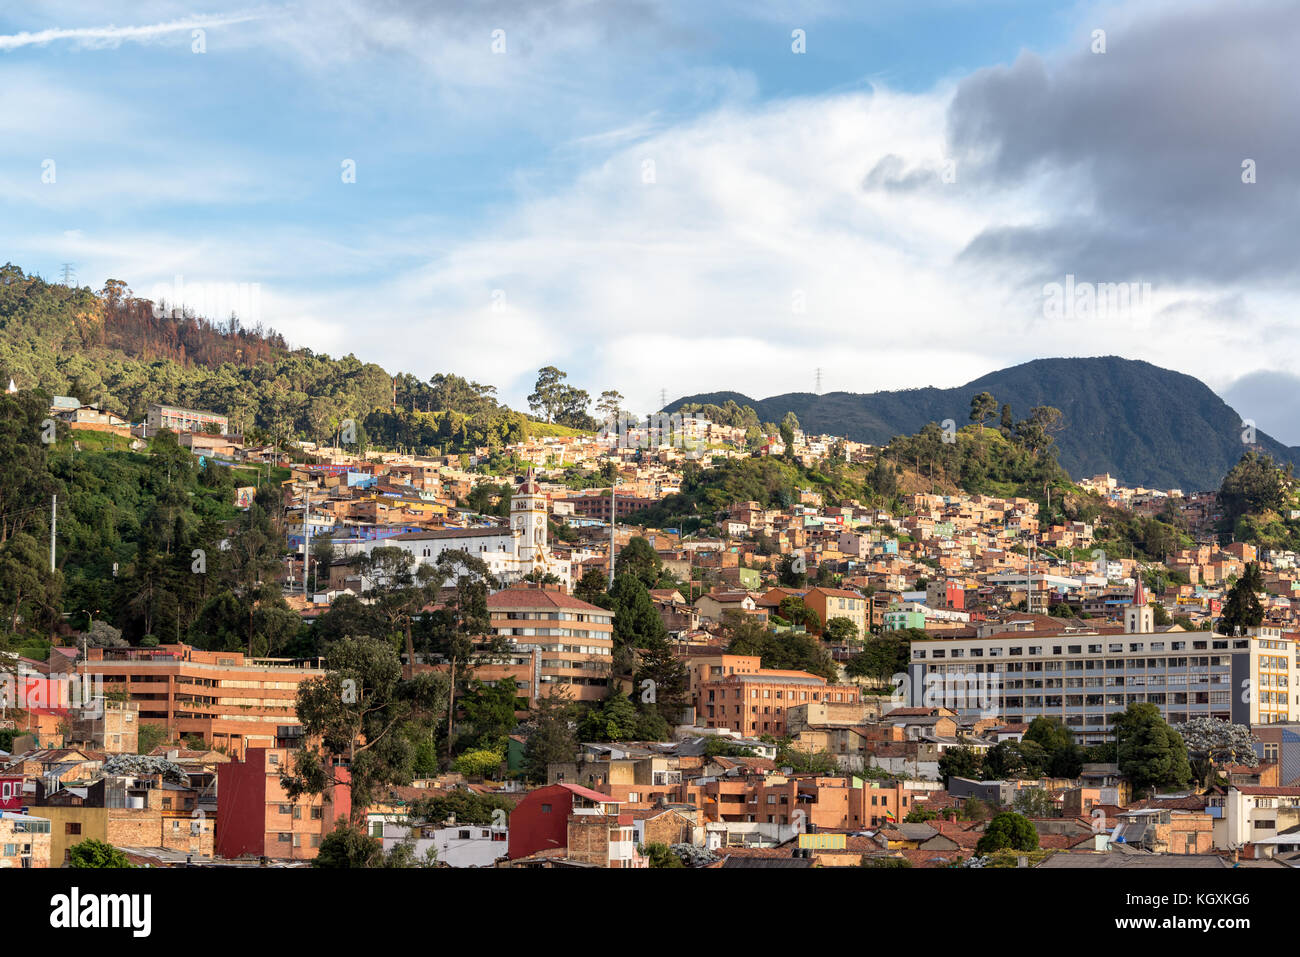 View of the neighborhoods of La Candelaria and Egipto in the historic center of Bogota, Colombia - Stock Image